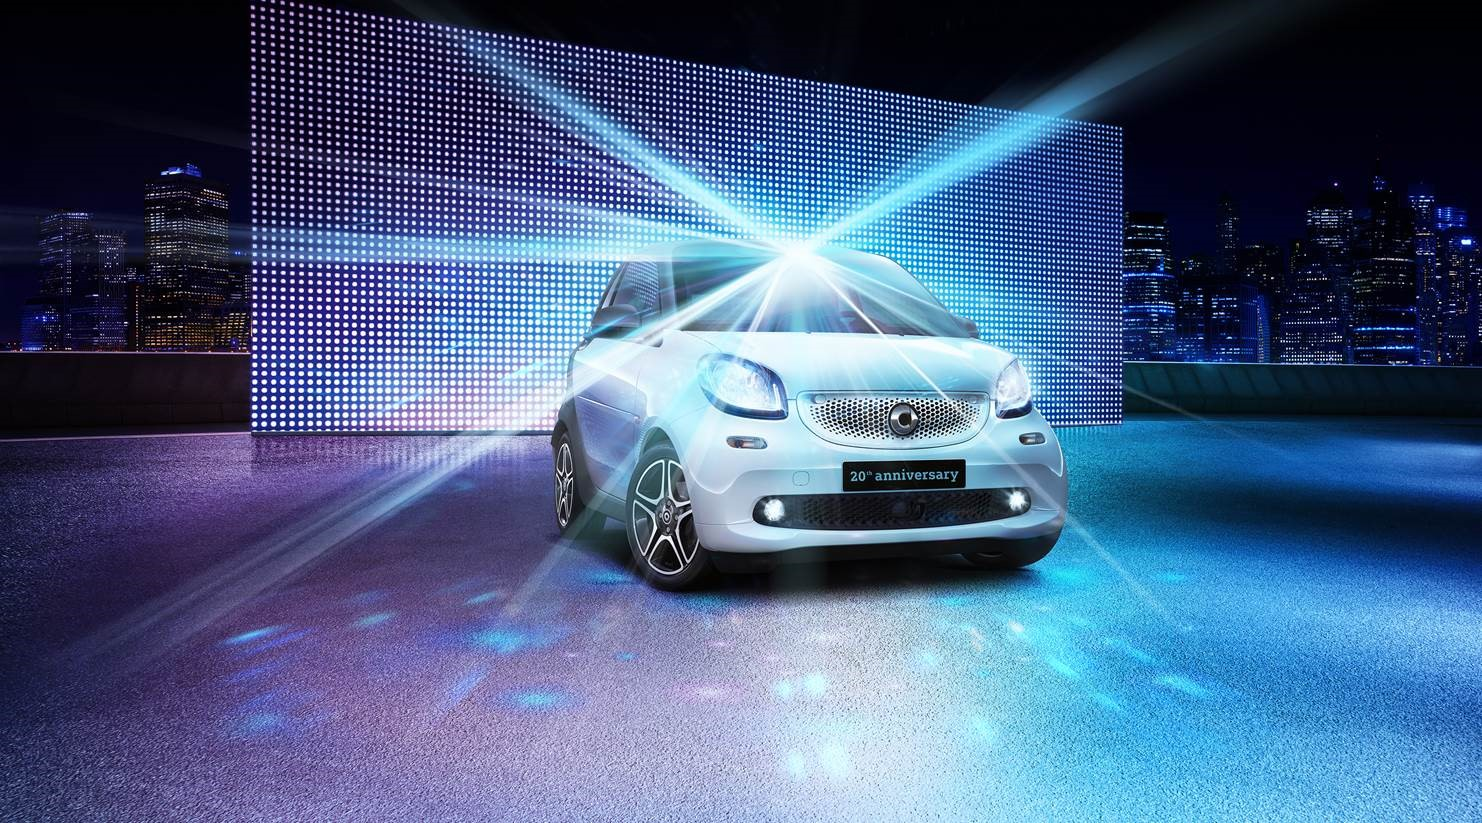 Smart Fortwo 20th anniversary